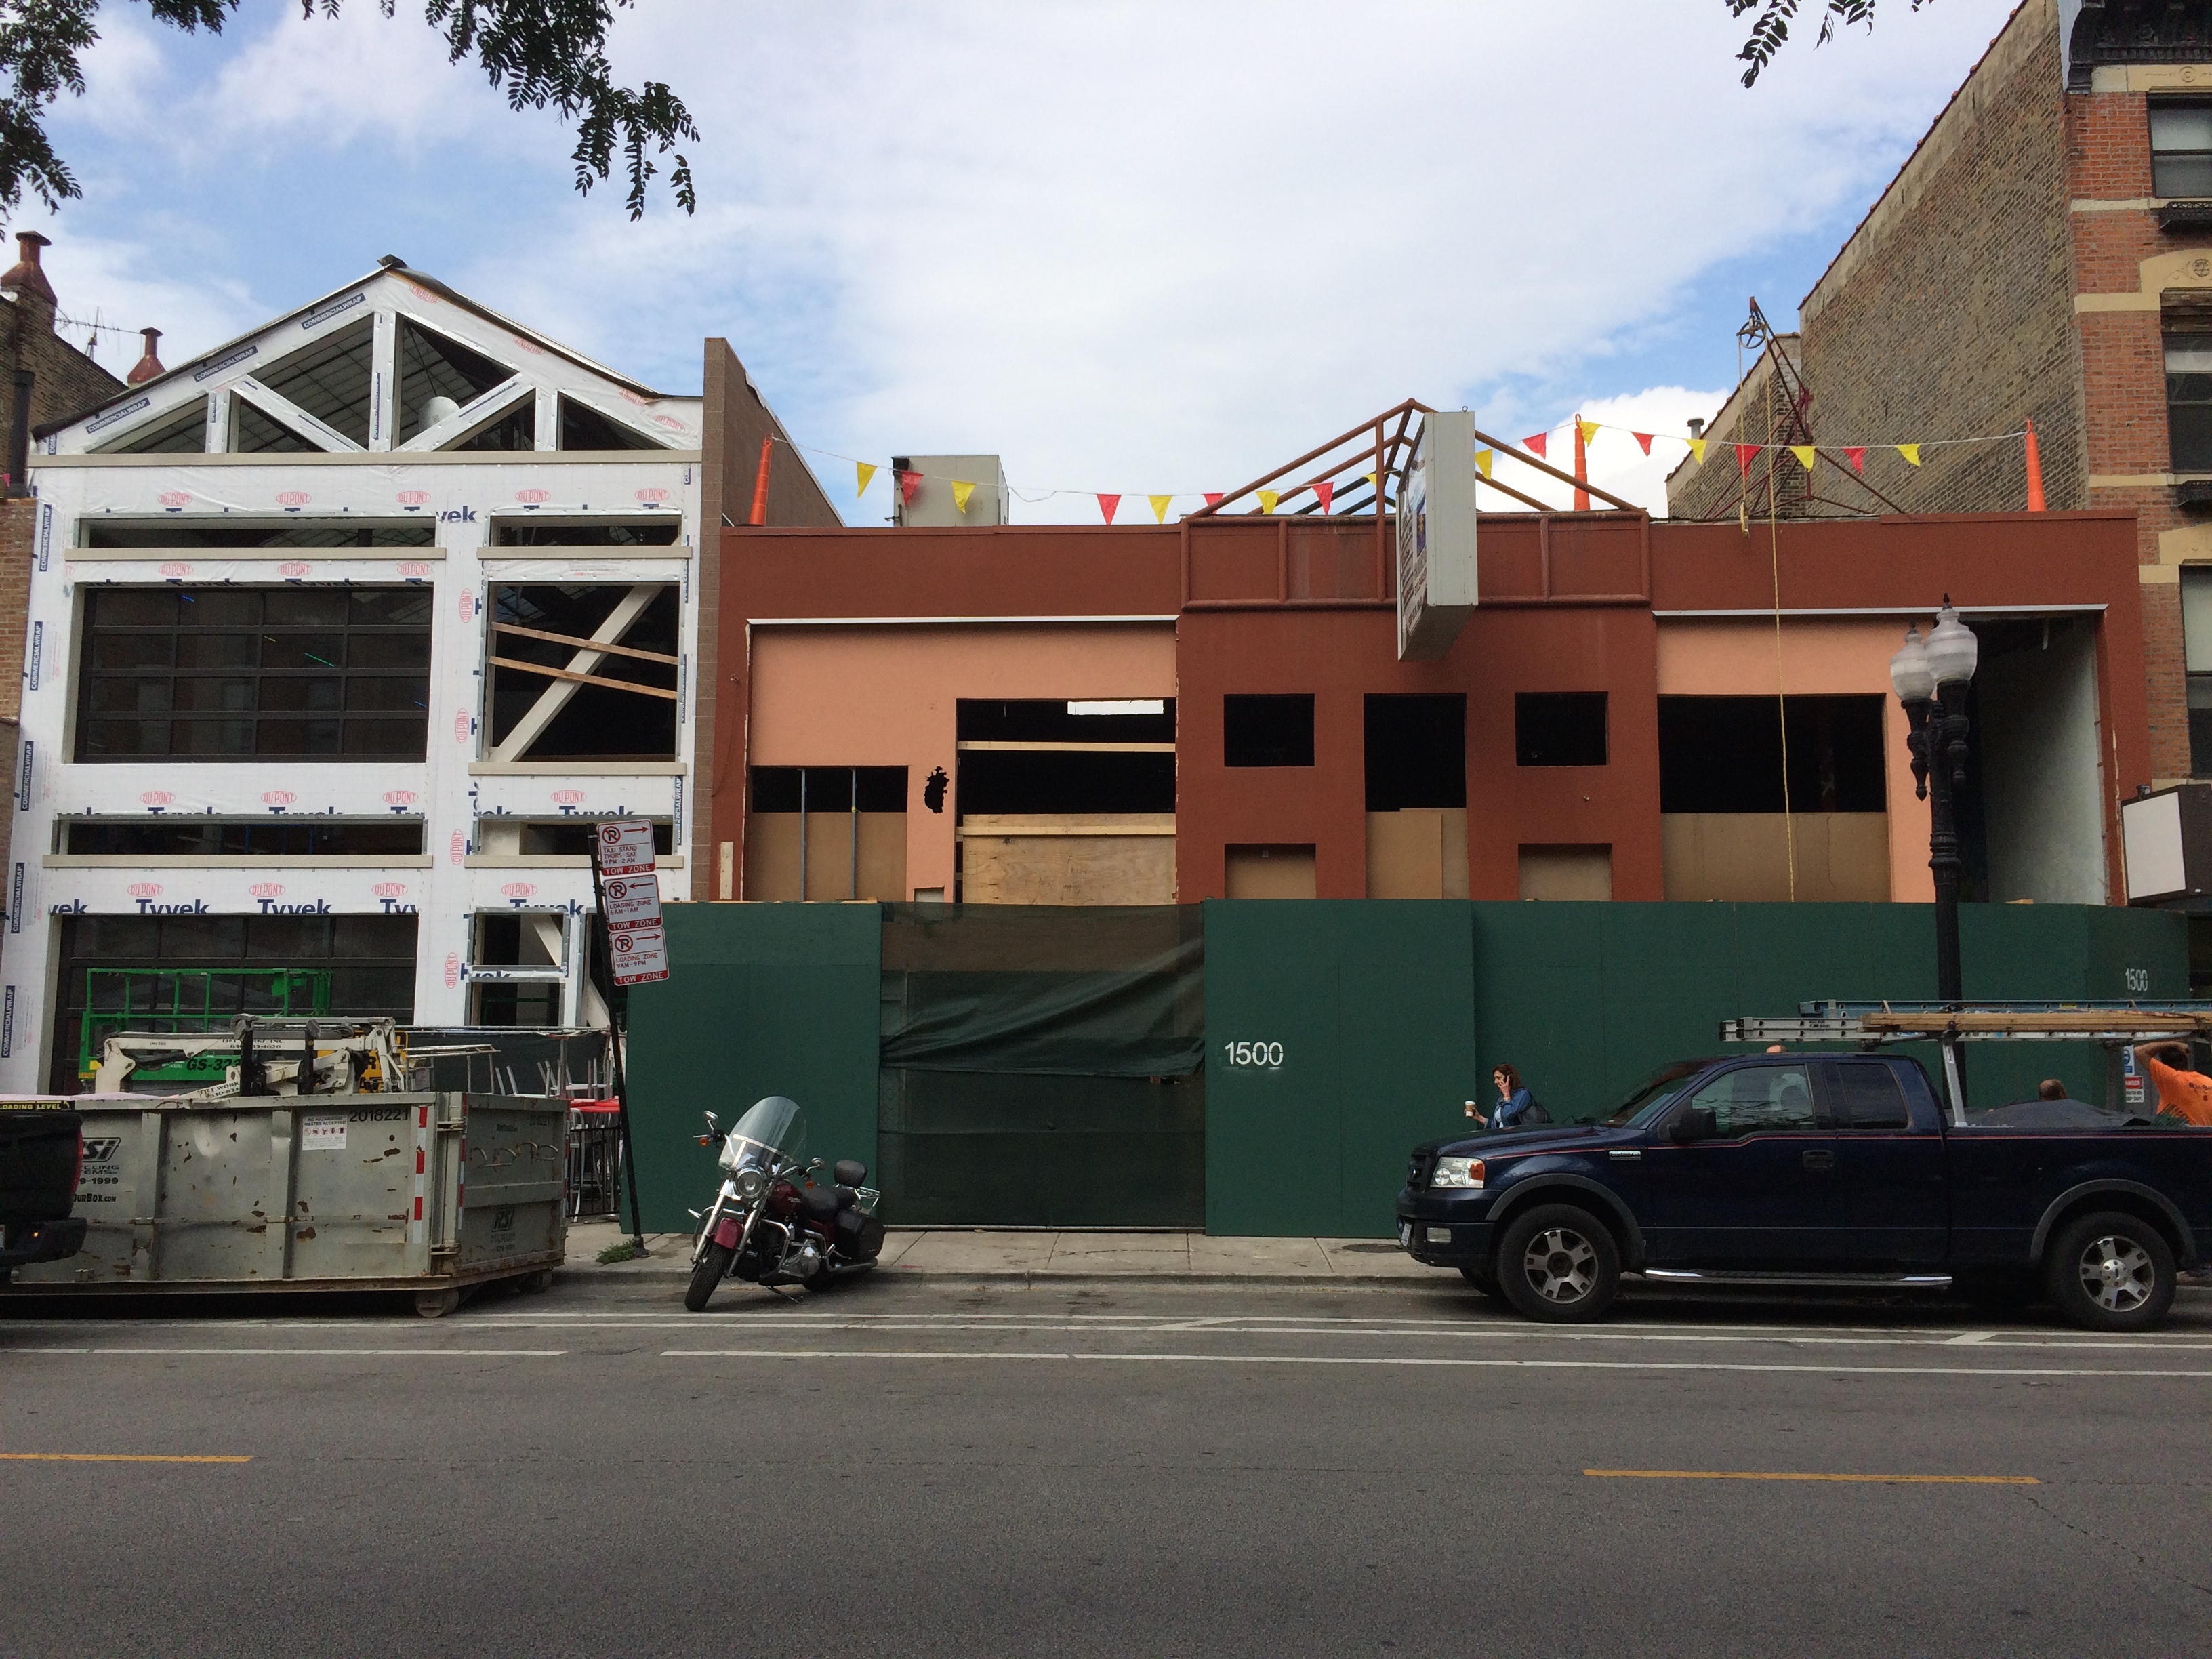 The owners of the Benchmark plan to open a new bar at the site on the right.